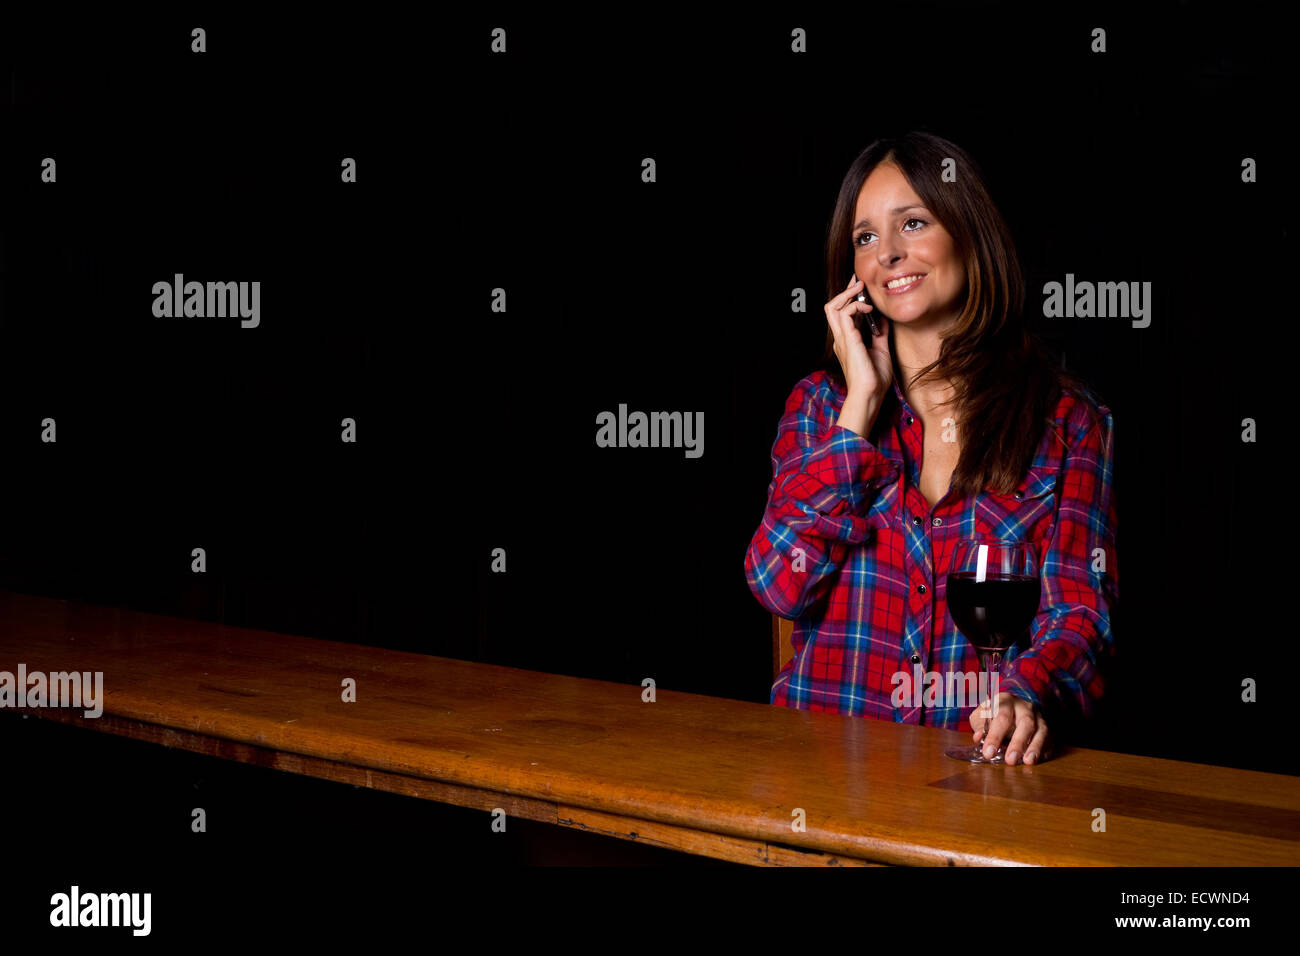 young woman making a phone call at the bar - Stock Image